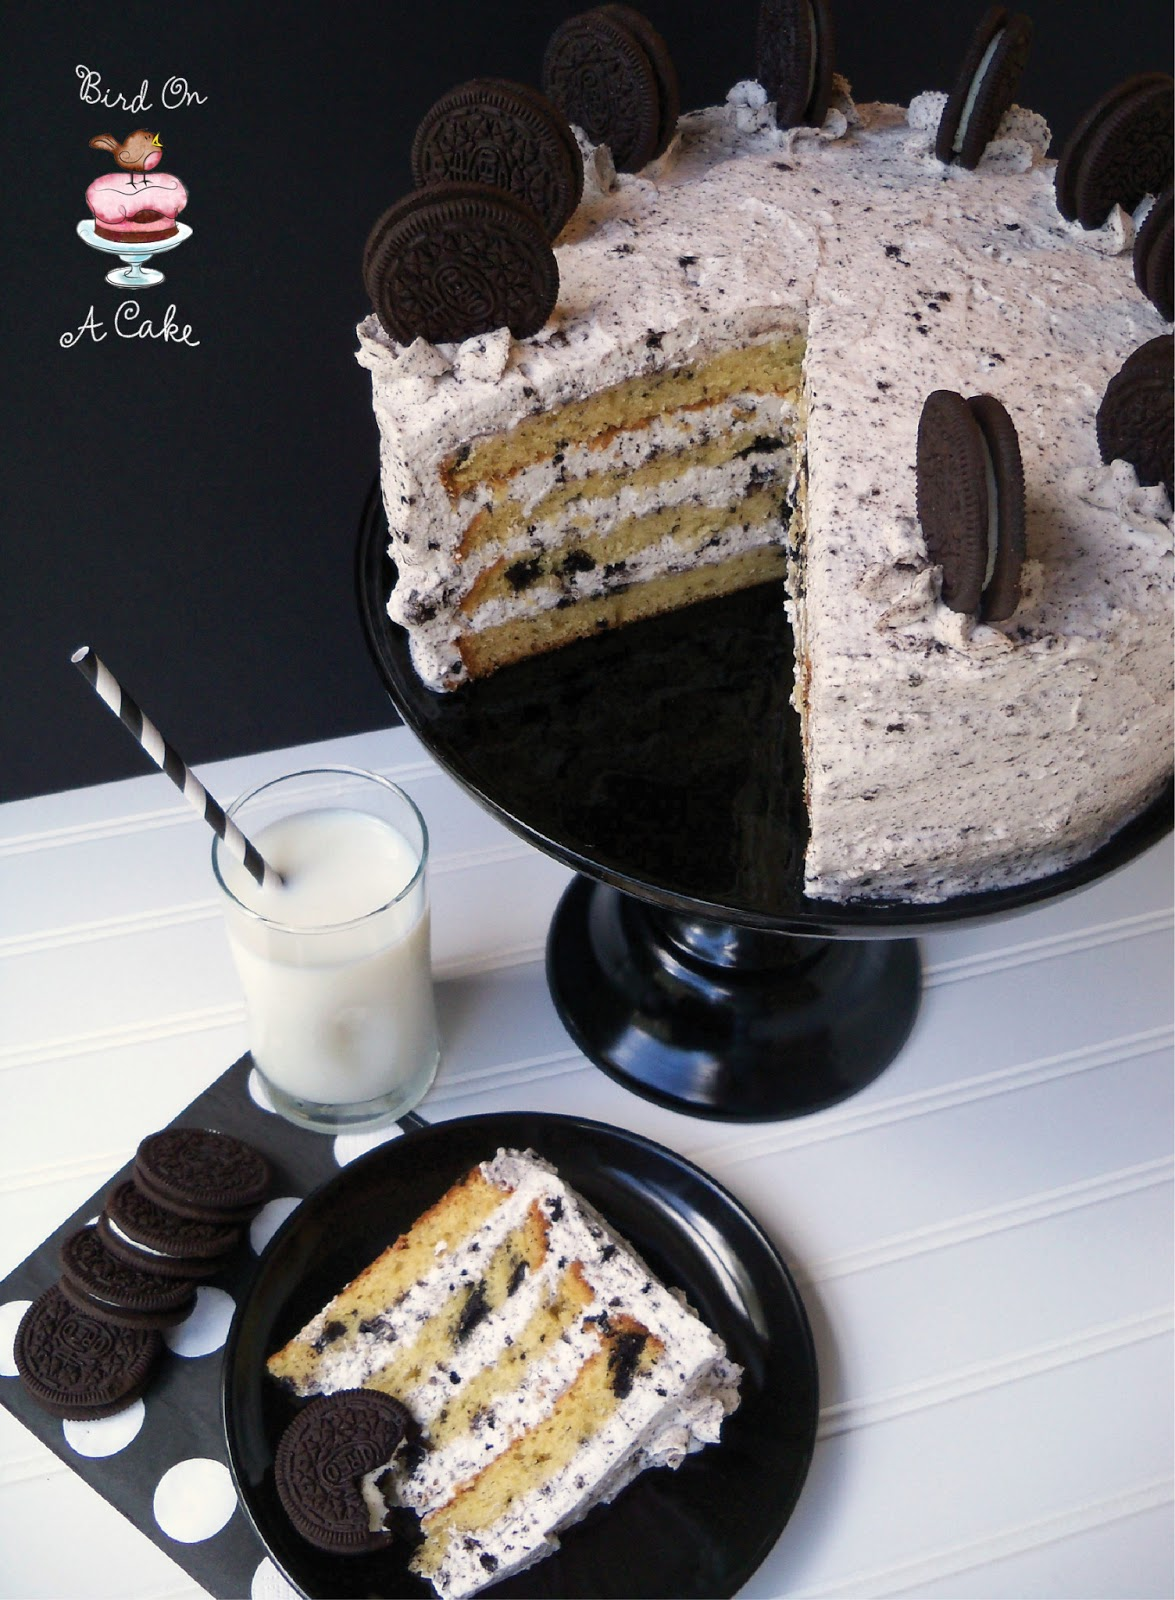 Bird On A Cake: Oreo Cookies and Cream Cake